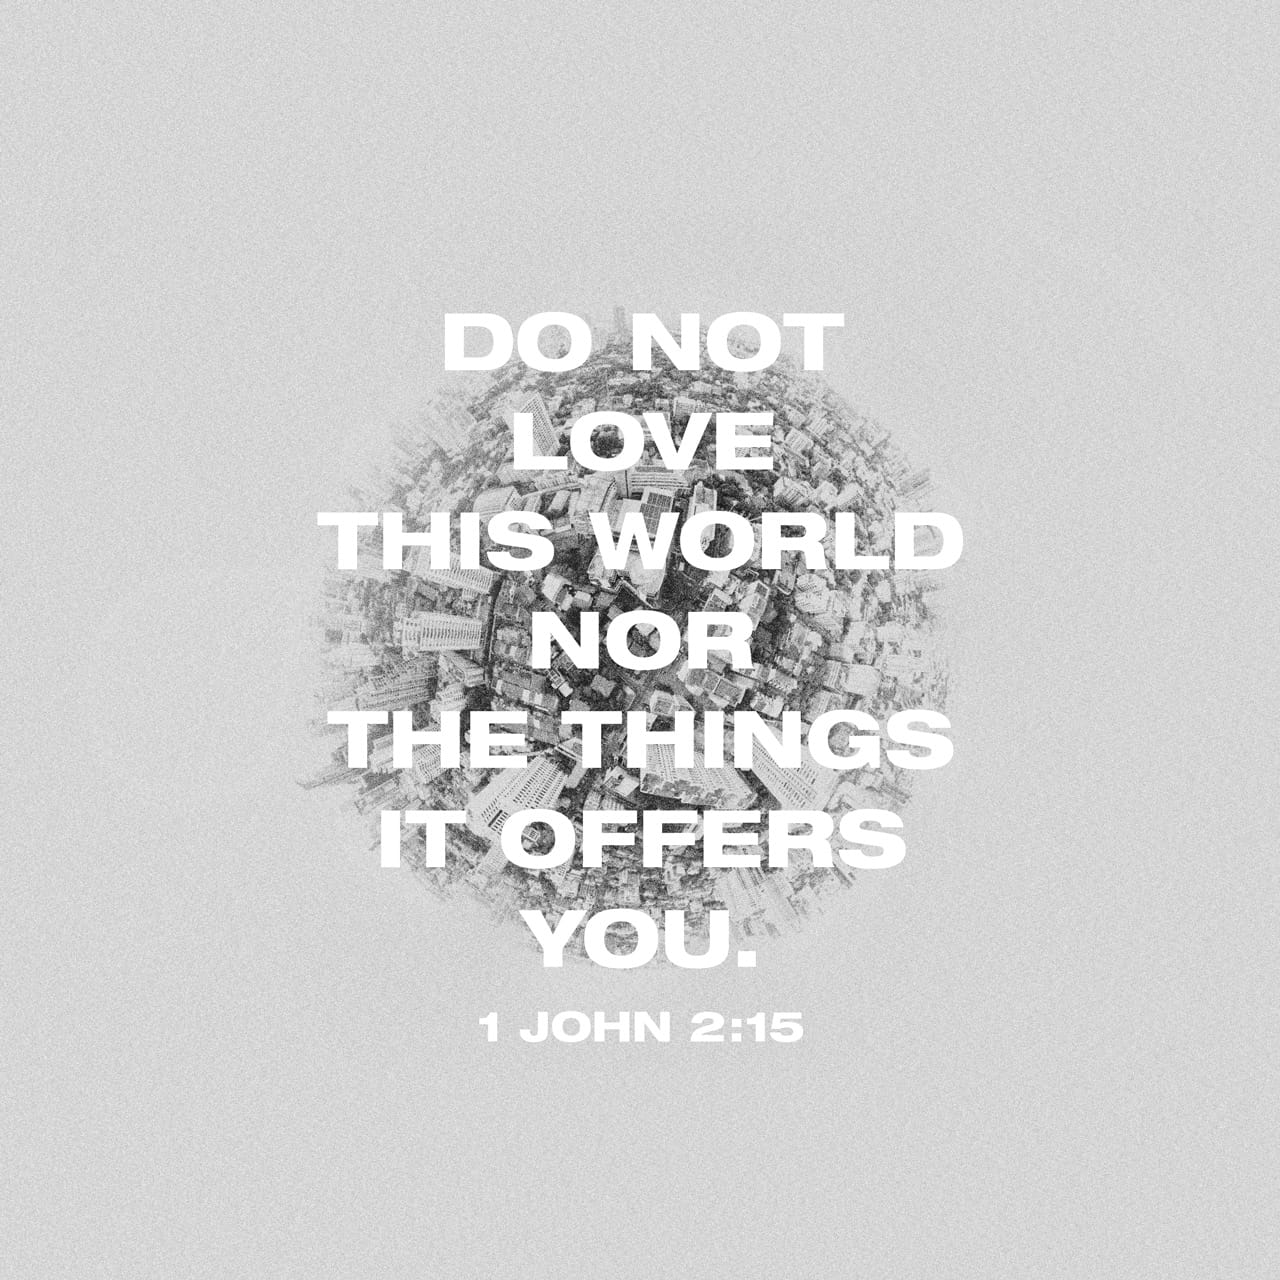 1 John 2:15-16 Do not love the world or anything in the world. If anyone loves the world, love for the Father is not in them. For everything in the world—the lust of the flesh, the lust of the eyes, and the pride of | New International Version (NIV)